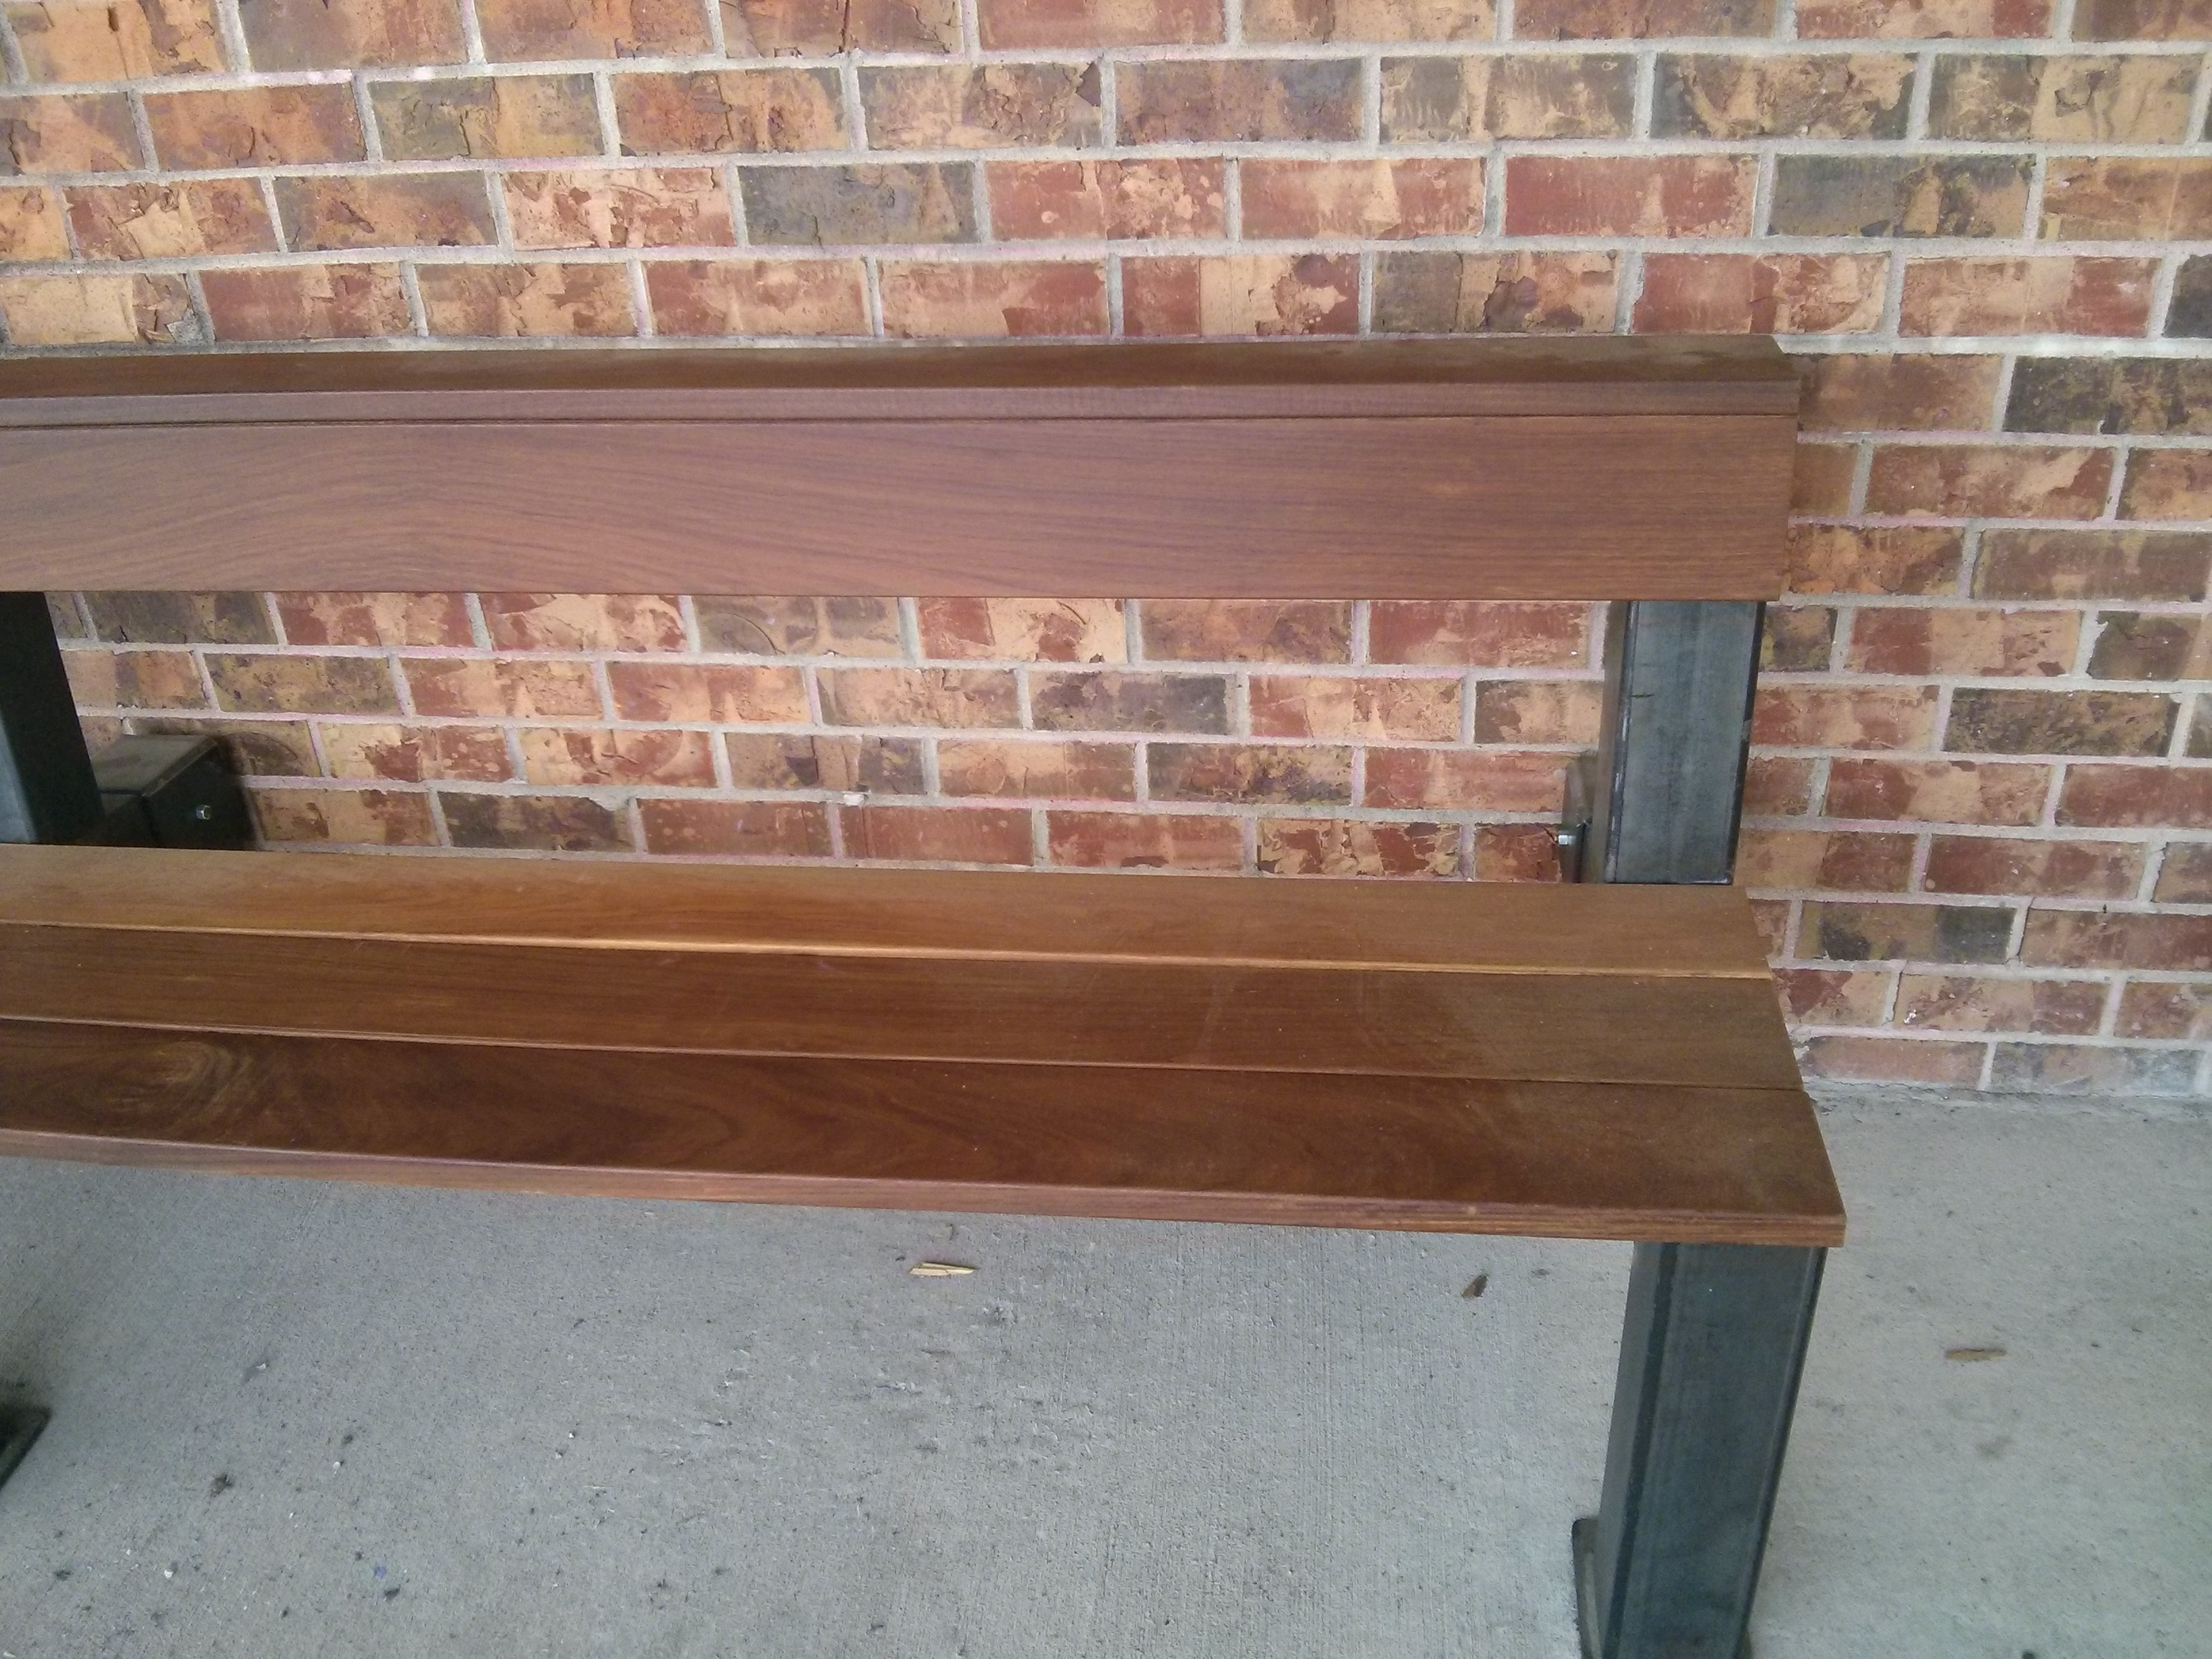 Modern Wood Bench : products_outdoor_modern_industrial_style_ipe_wood_bench2